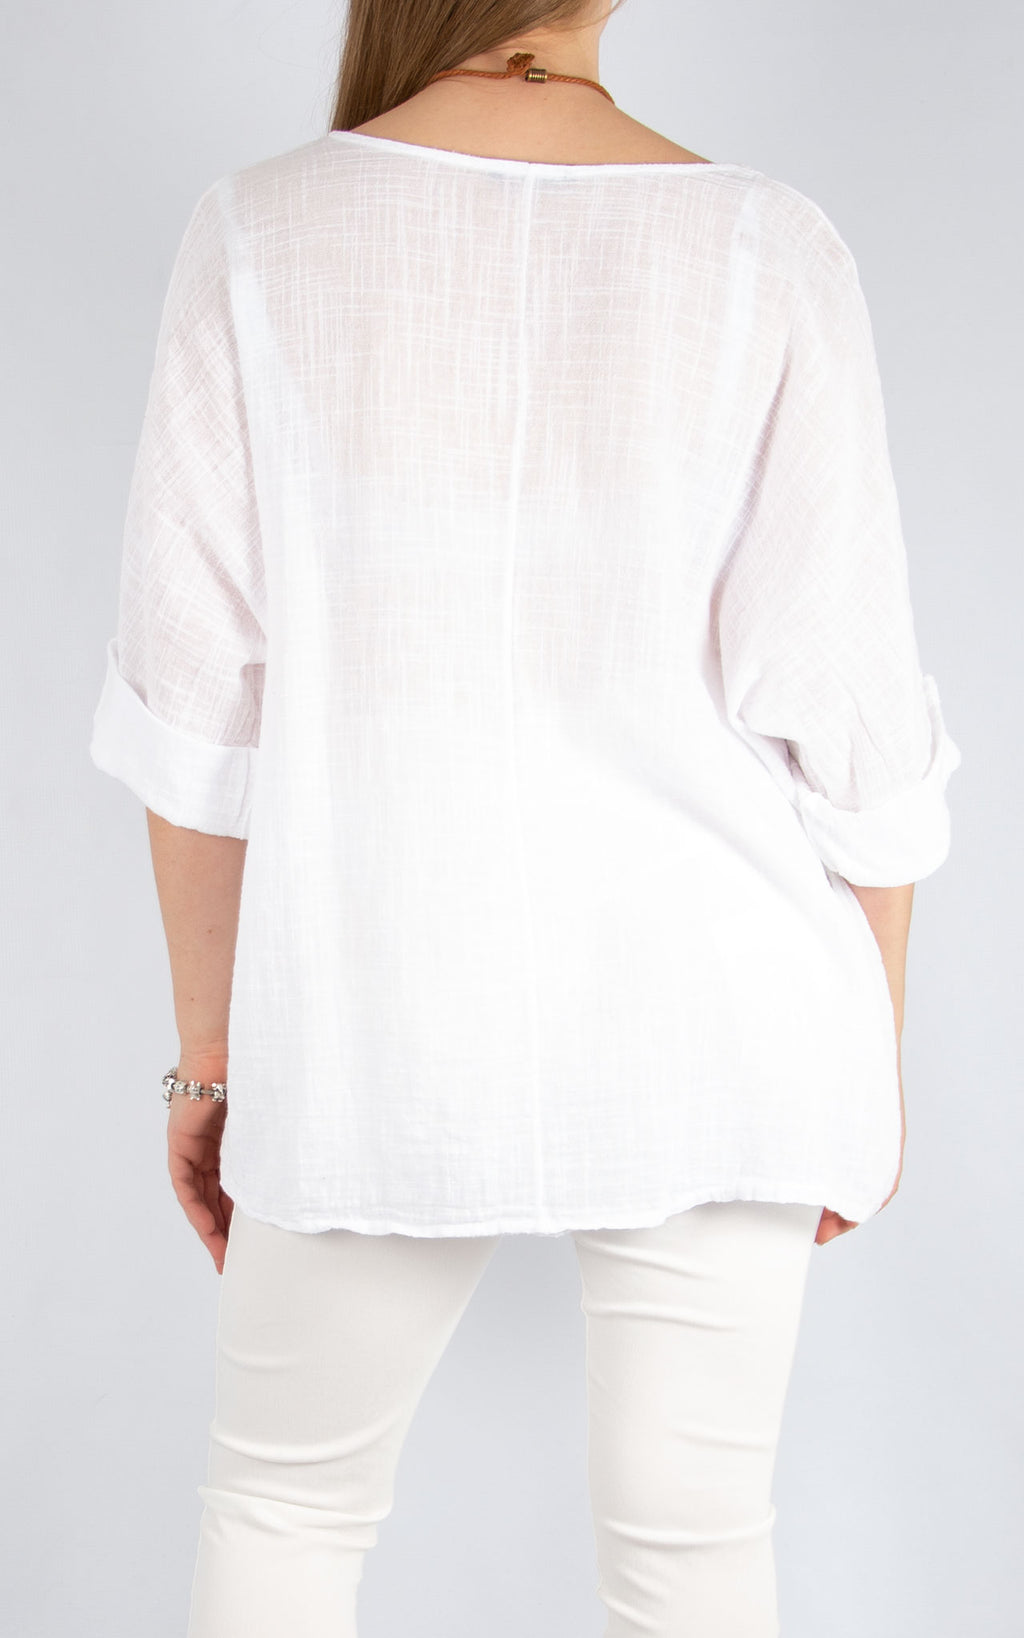 White Plain Cotton T | Made in Italy